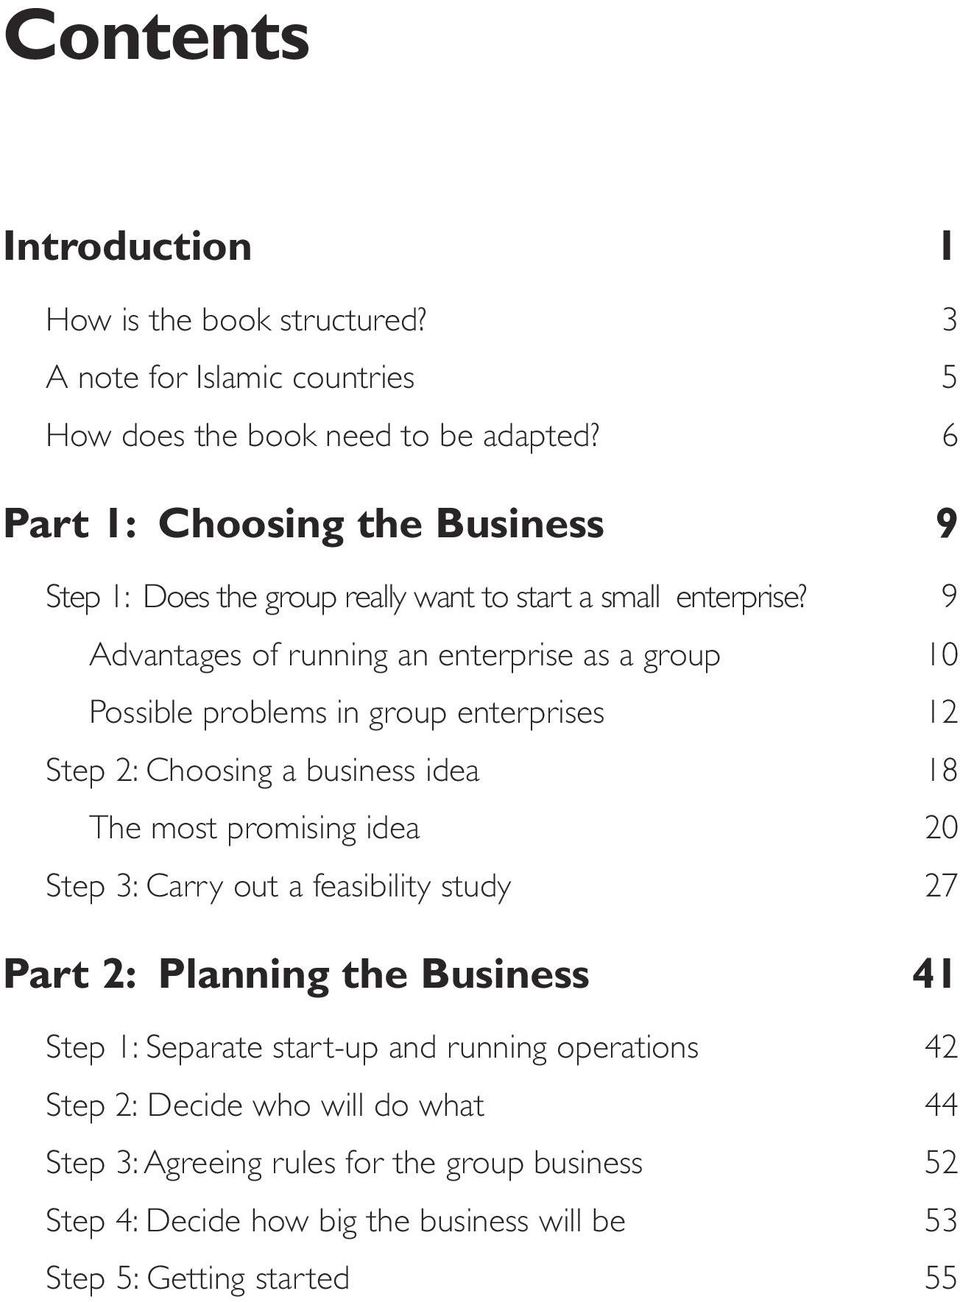 9 Advantages of running an enterprise as a group 10 Possible problems in group enterprises 12 Step 2: Choosing a business idea 18 The most promising idea 20 Step 3: